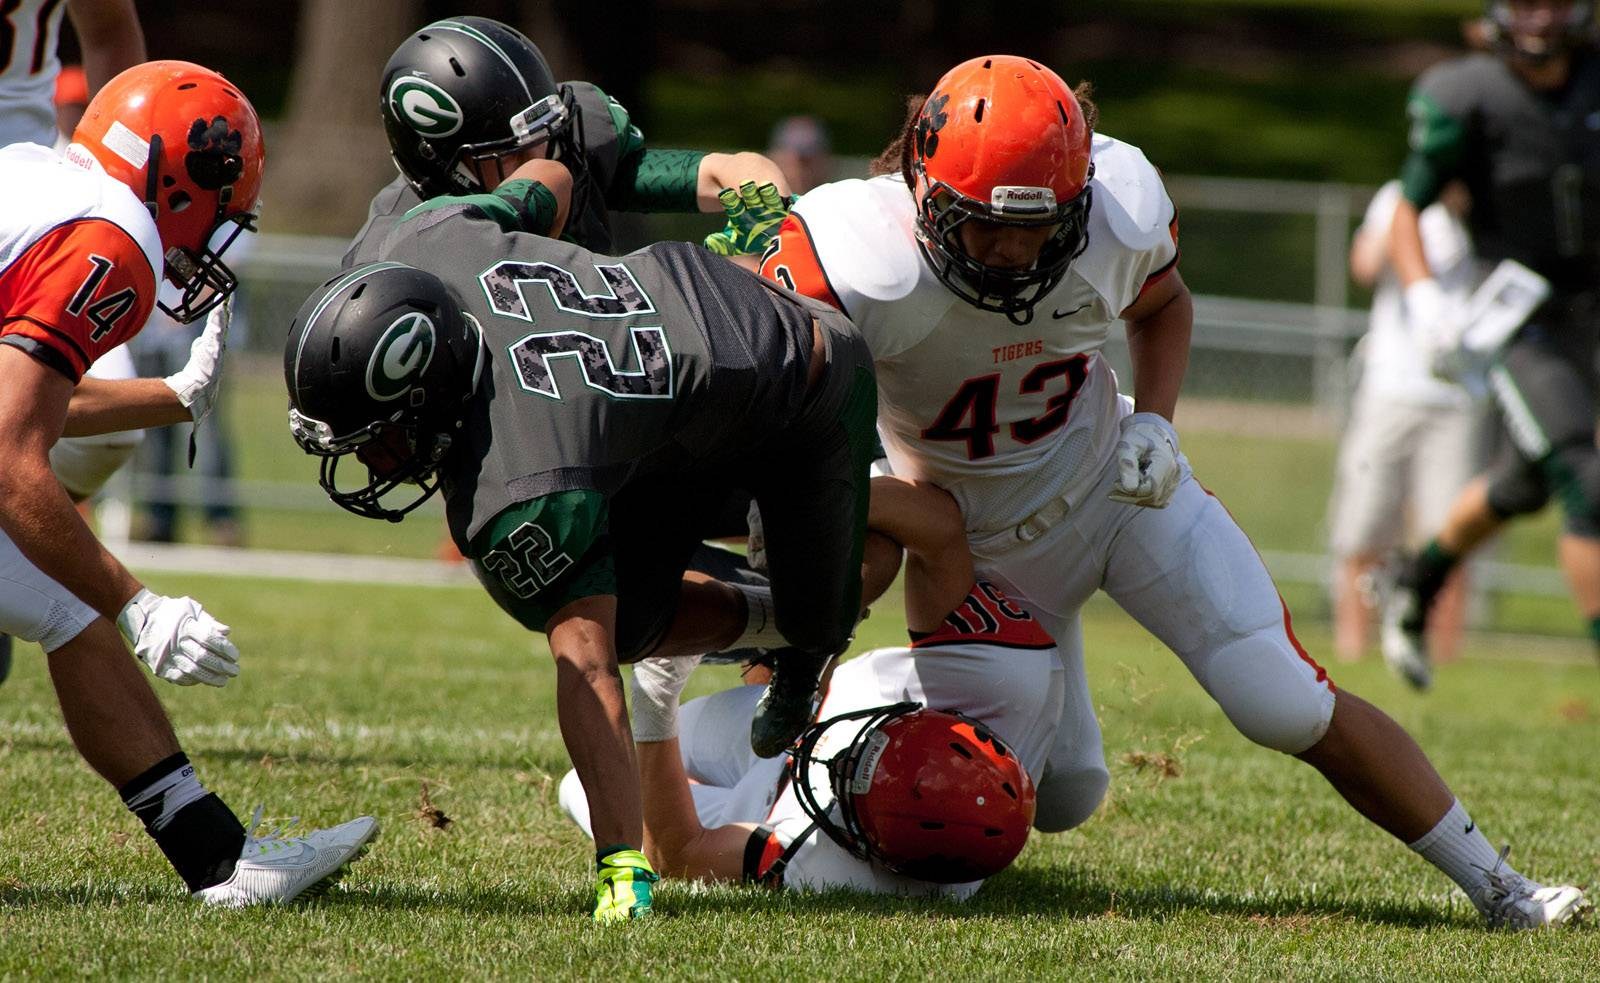 Week -1- Photos from the Wheaton Warrenville South at Glenbard West football game on Saturday, Aug. 30 in Glen Ellyn.